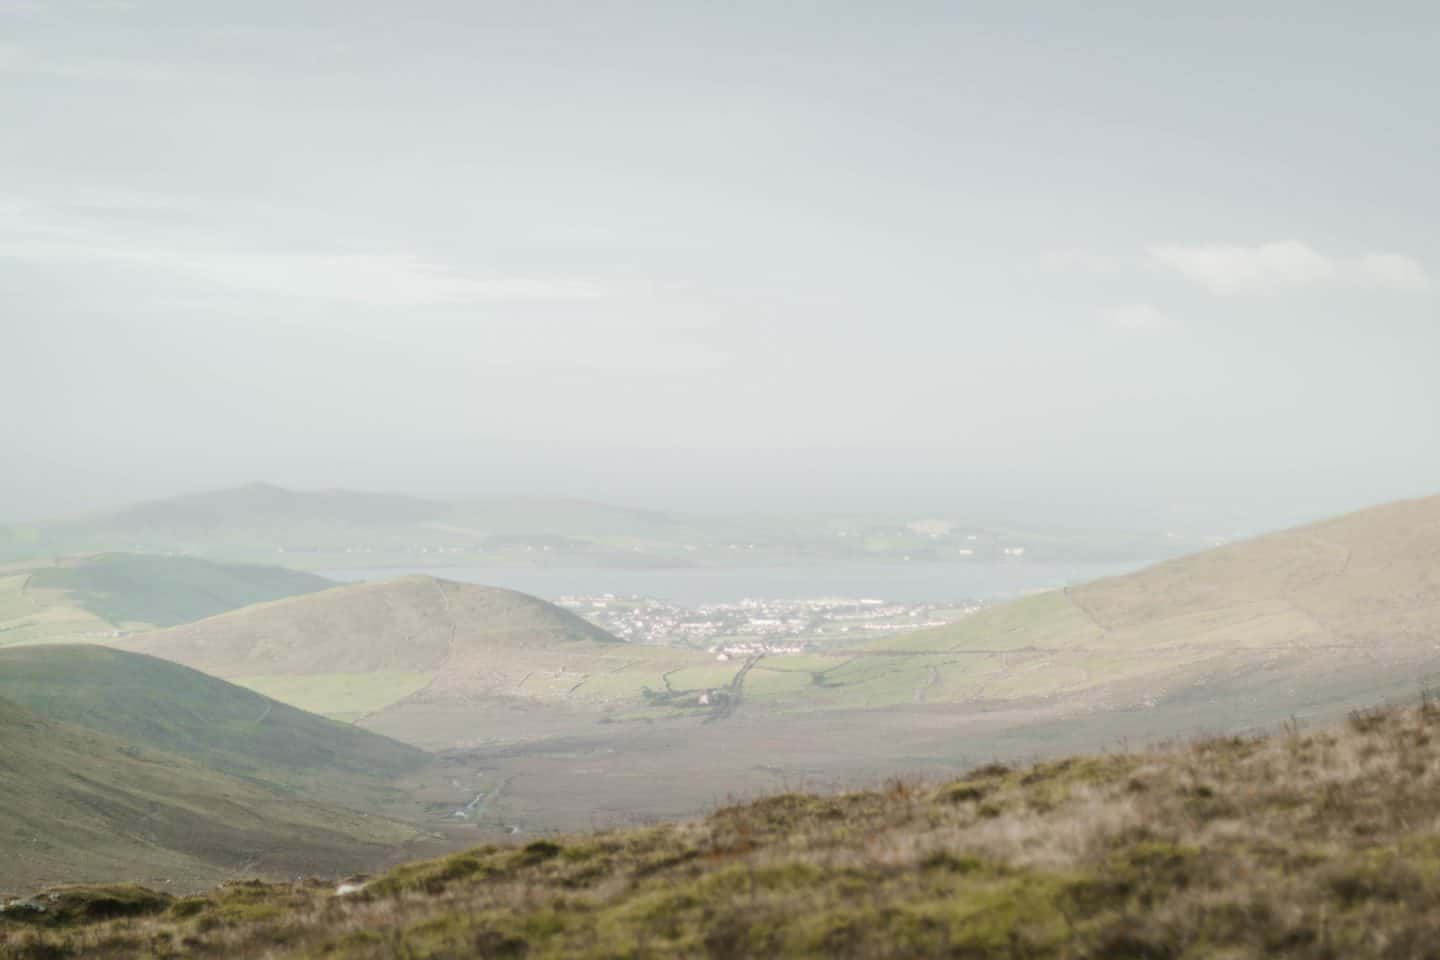 Conor Pass on the way to Dingle, Ireland